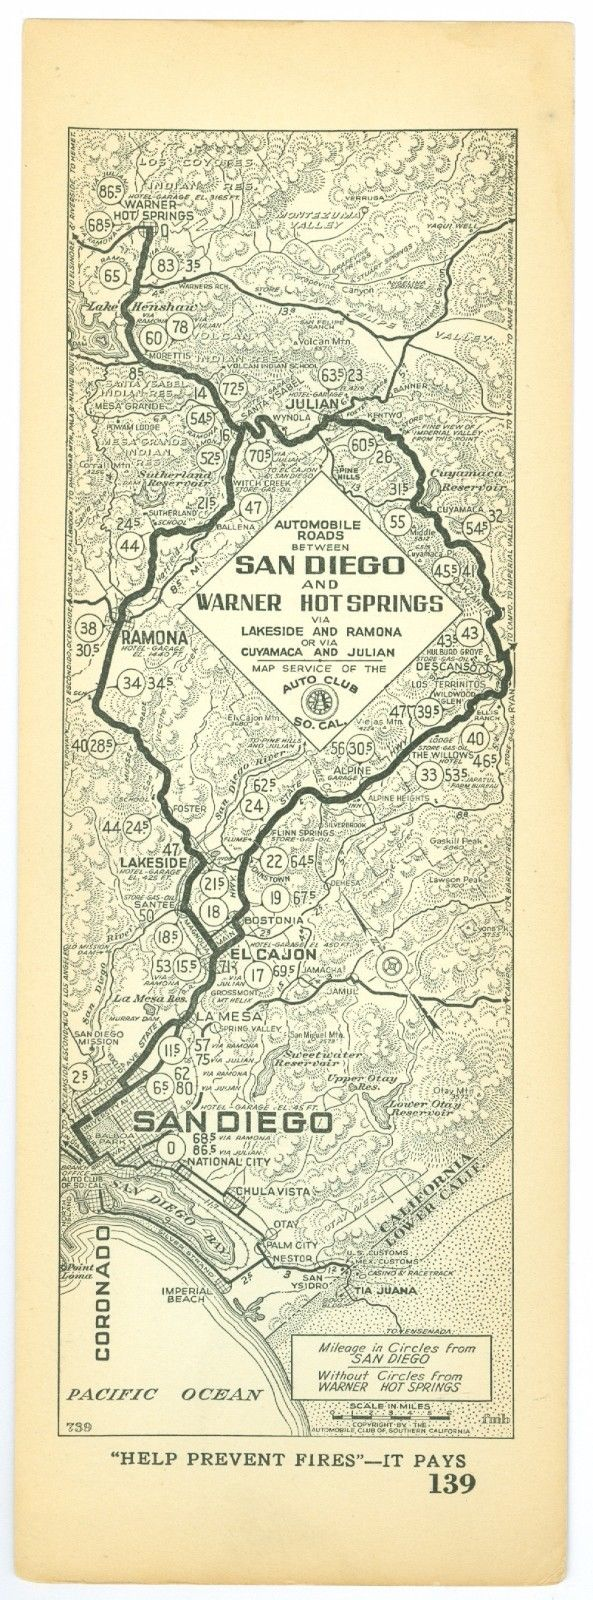 1920s San Diego to Warner Hot Springs, AAA Automobile Club of Southern Calif Map